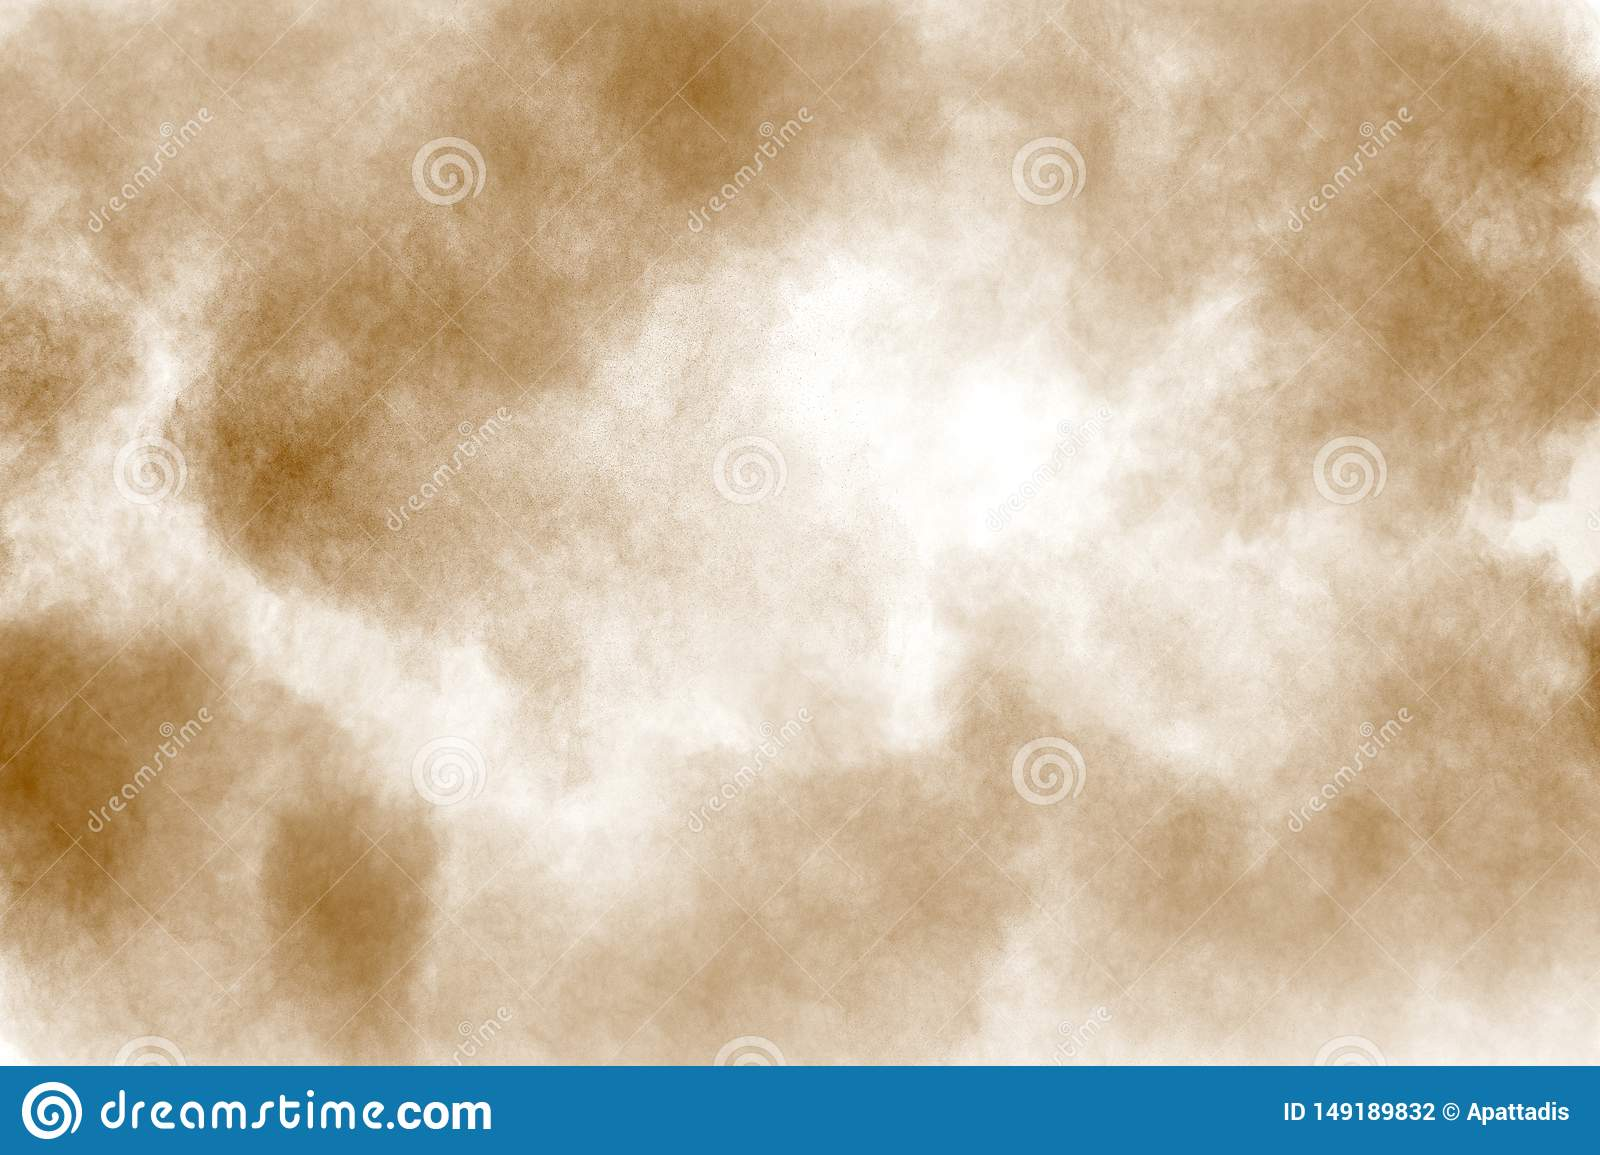 Brown dust cloud.Brown particles splattered on white background